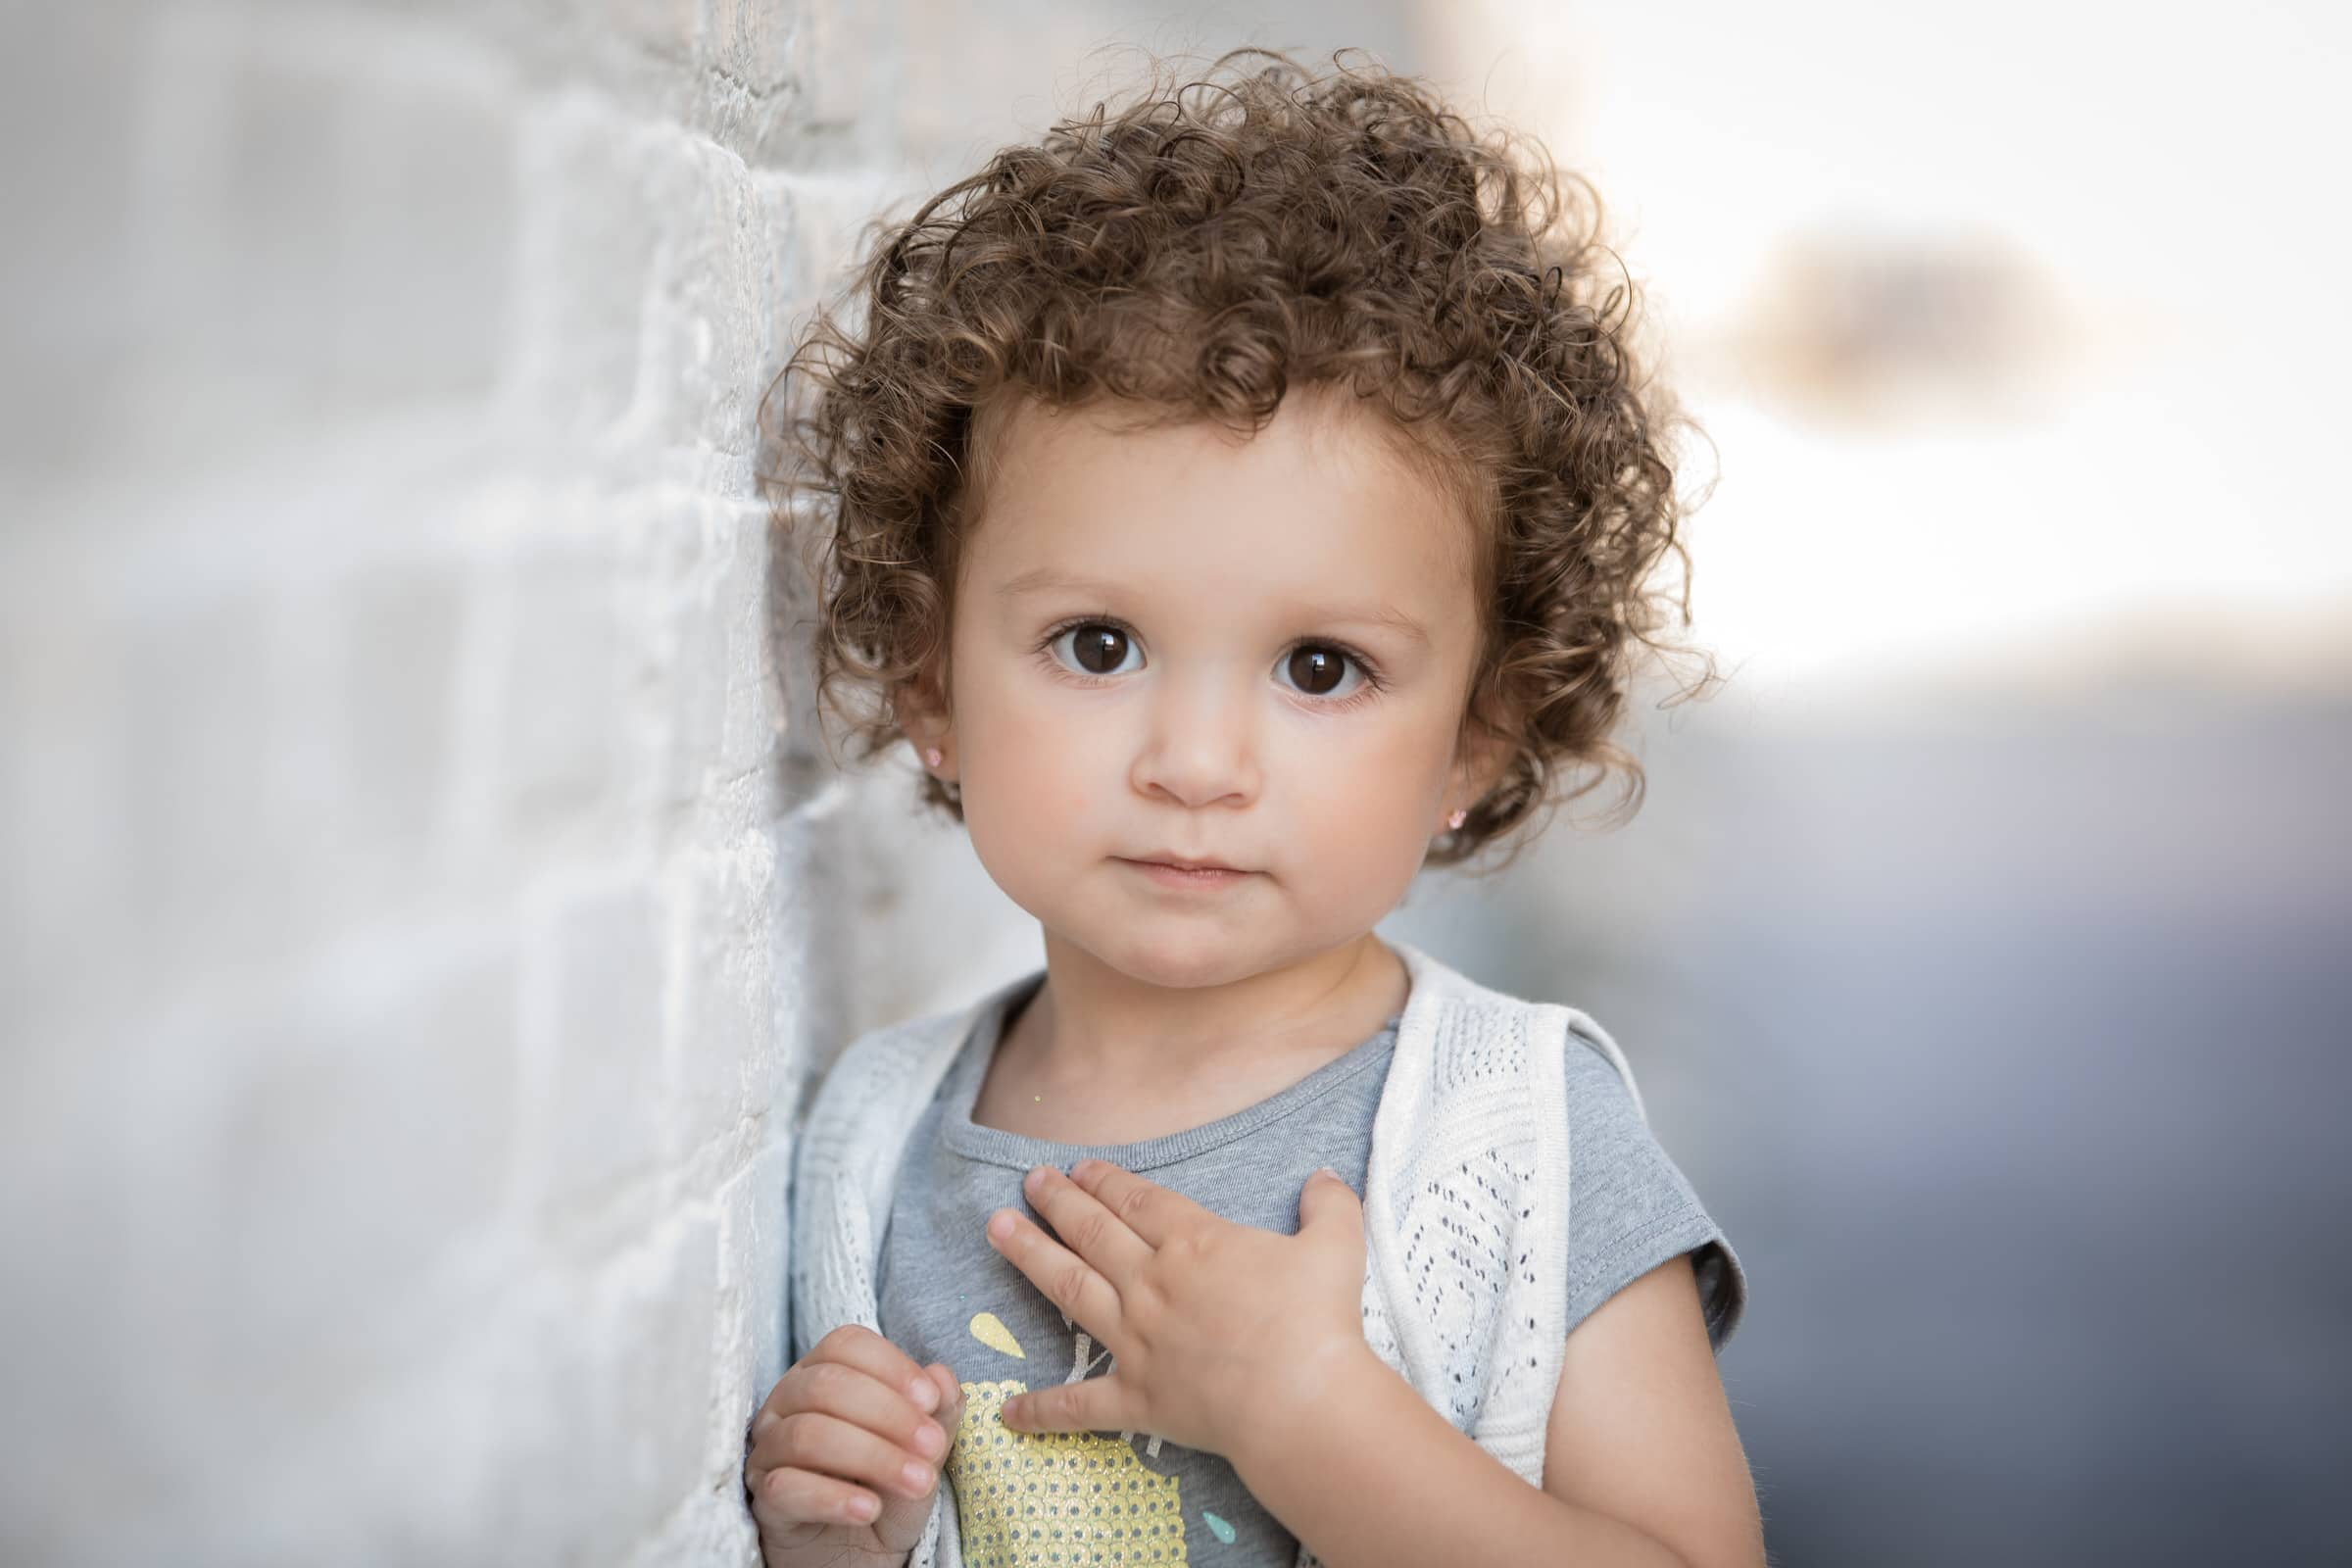 child model with curly hair and brown eyes